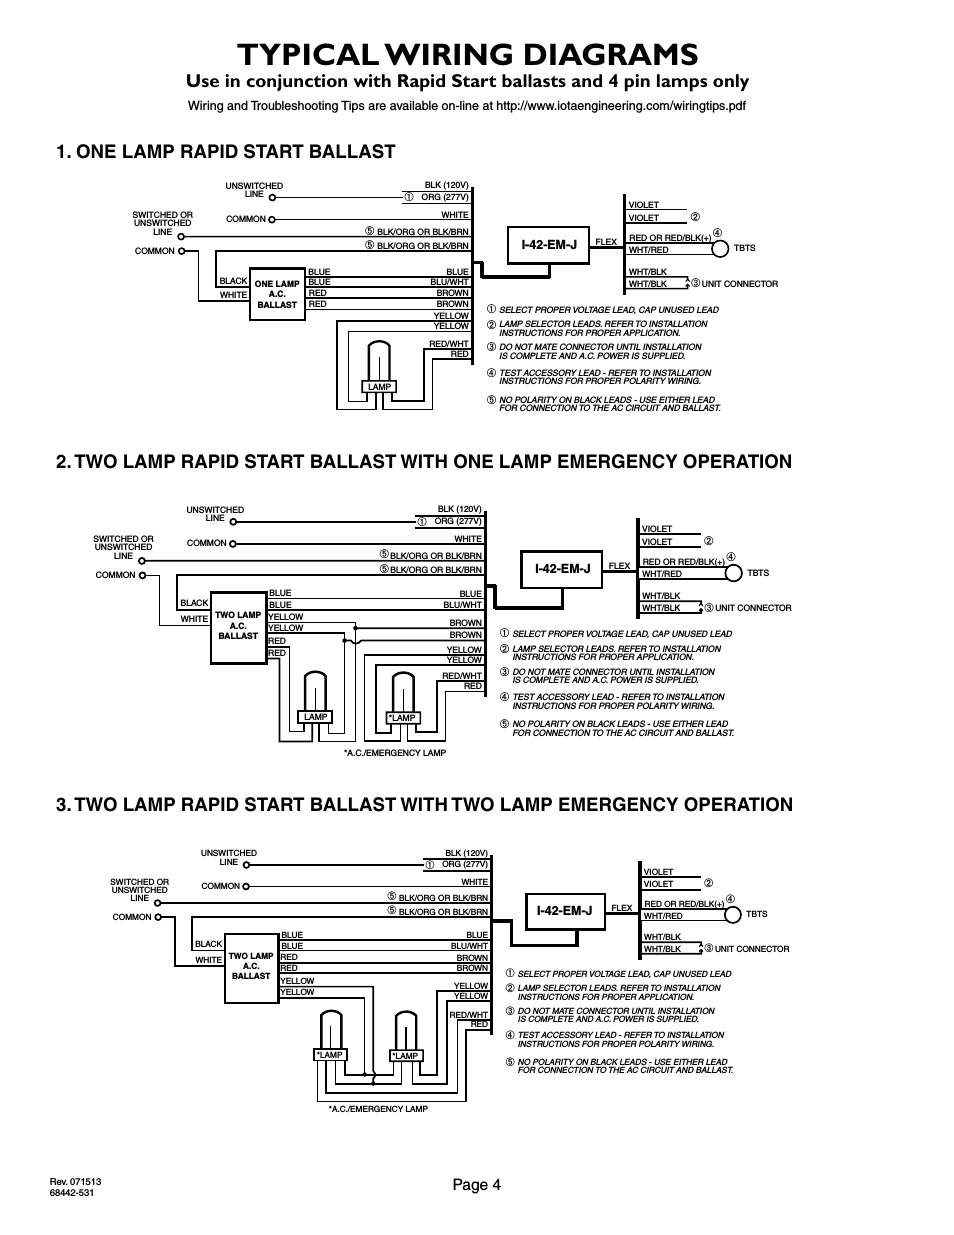 lithonia emergency ballast wiring diagram led emergency ballast wiring diagram 4 lamp ballast wiring diagram with ps1400 | wiring library